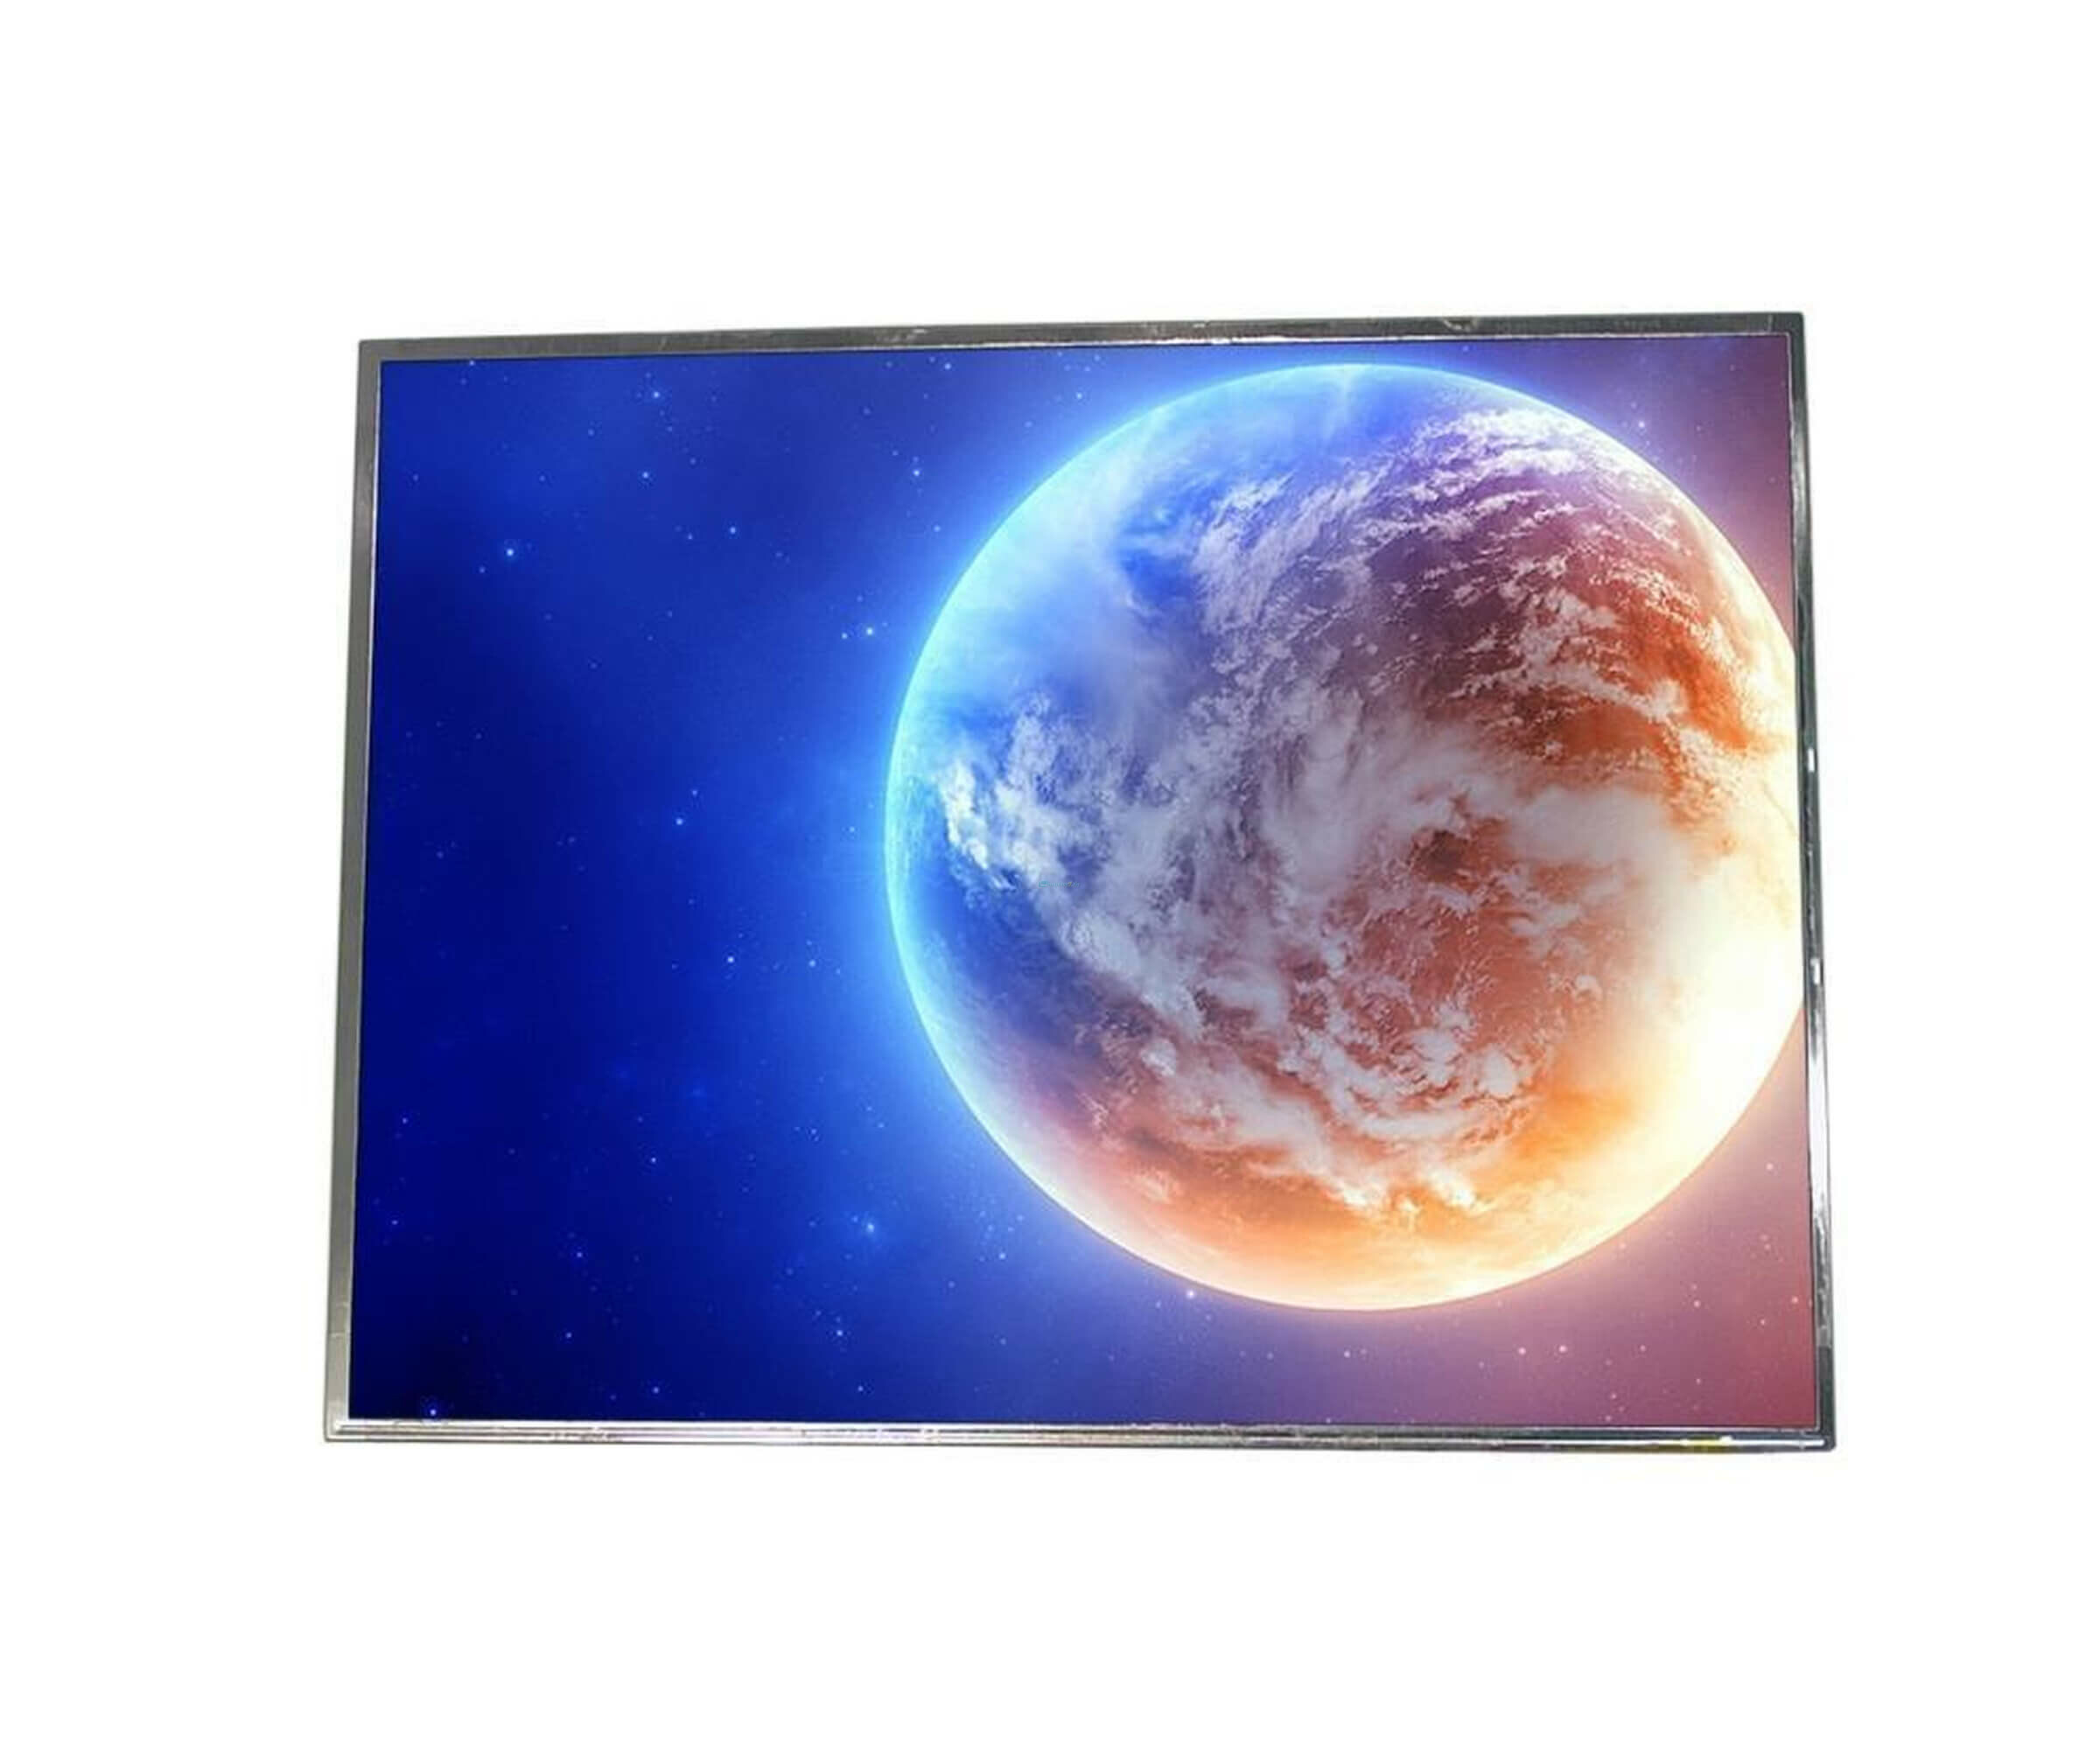 AUO AU Optronics Display - M201EW02 V.8 - 20.1 - 1680 x 1050 - WSXGA+ - LED